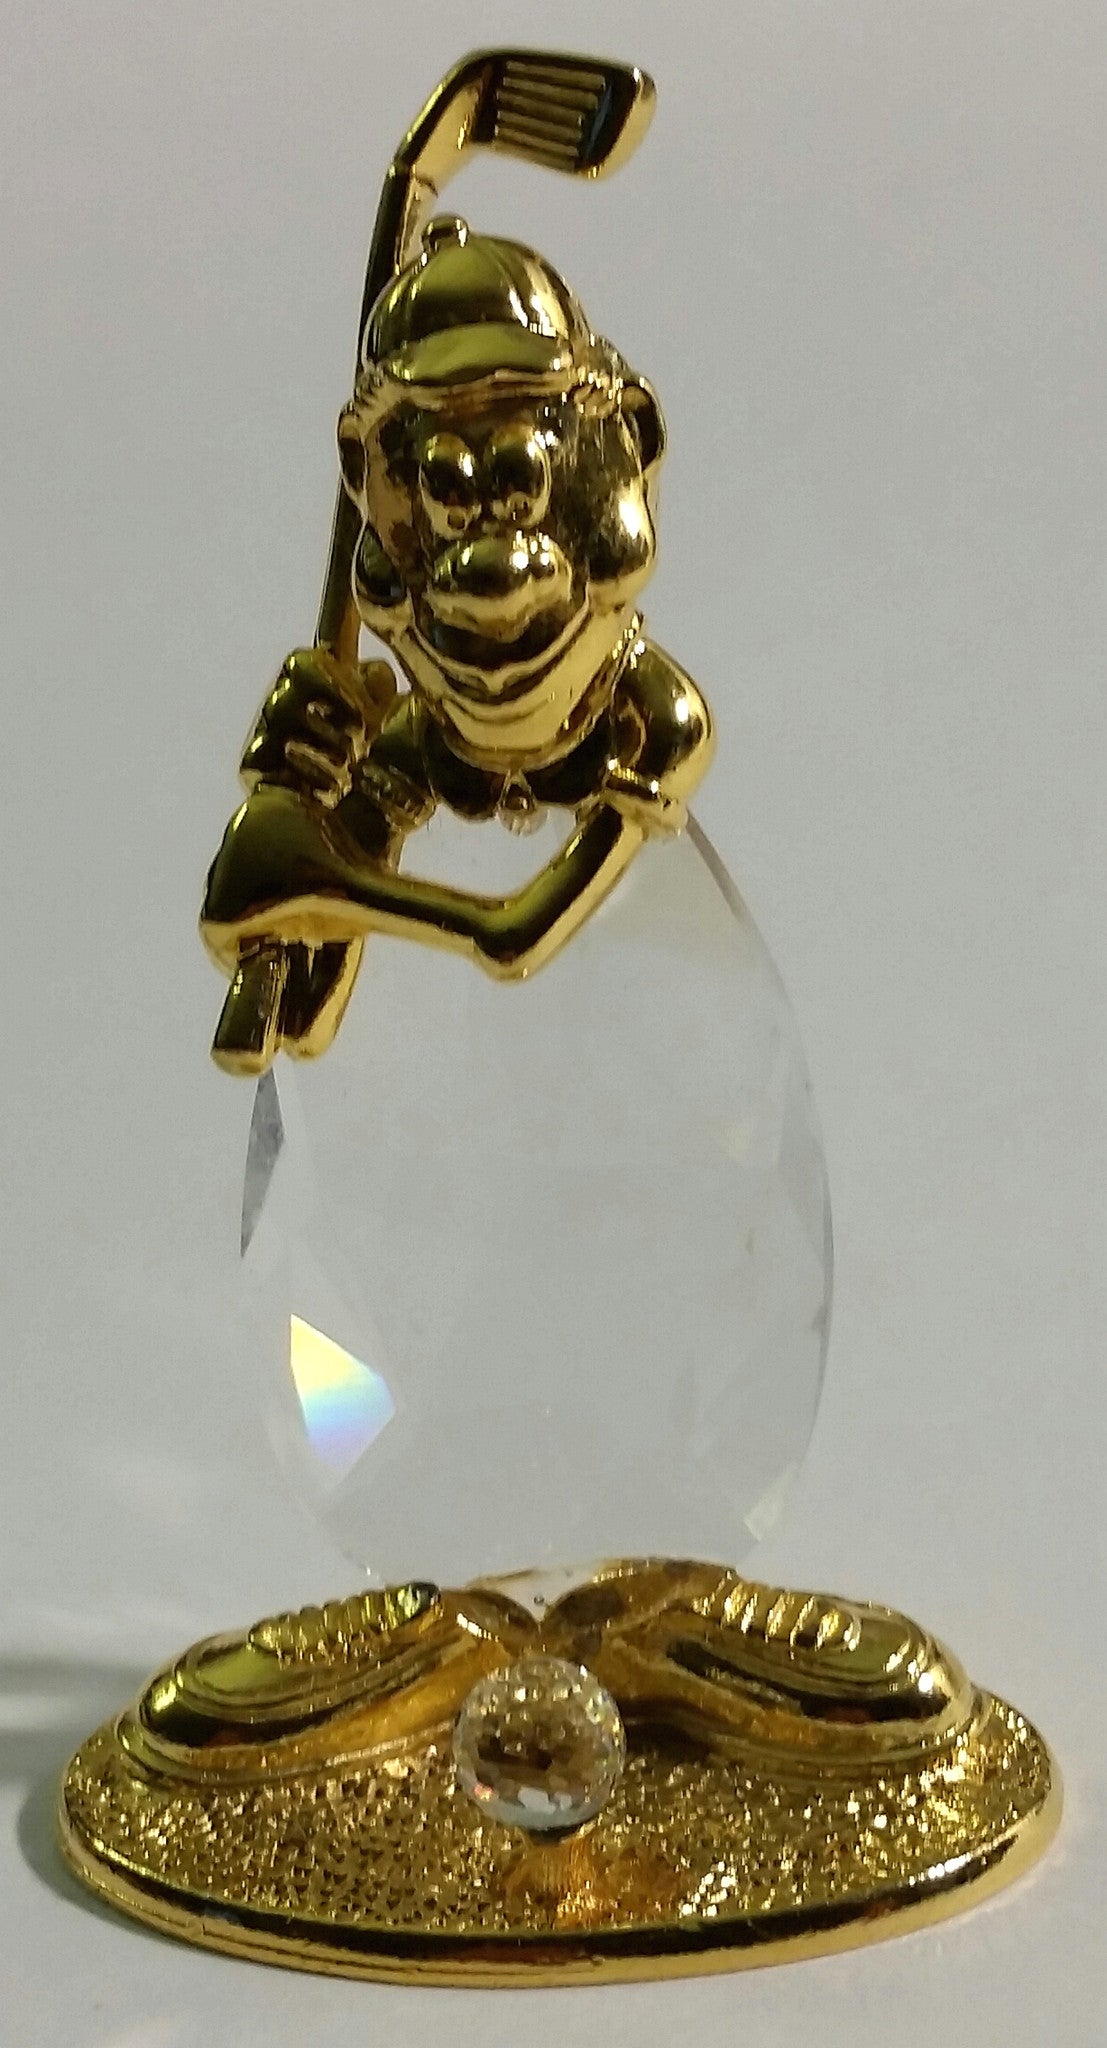 Crystal Golfer Figurine - Crystal Golfer Miniature Handcrafted With Swarovski Crystal